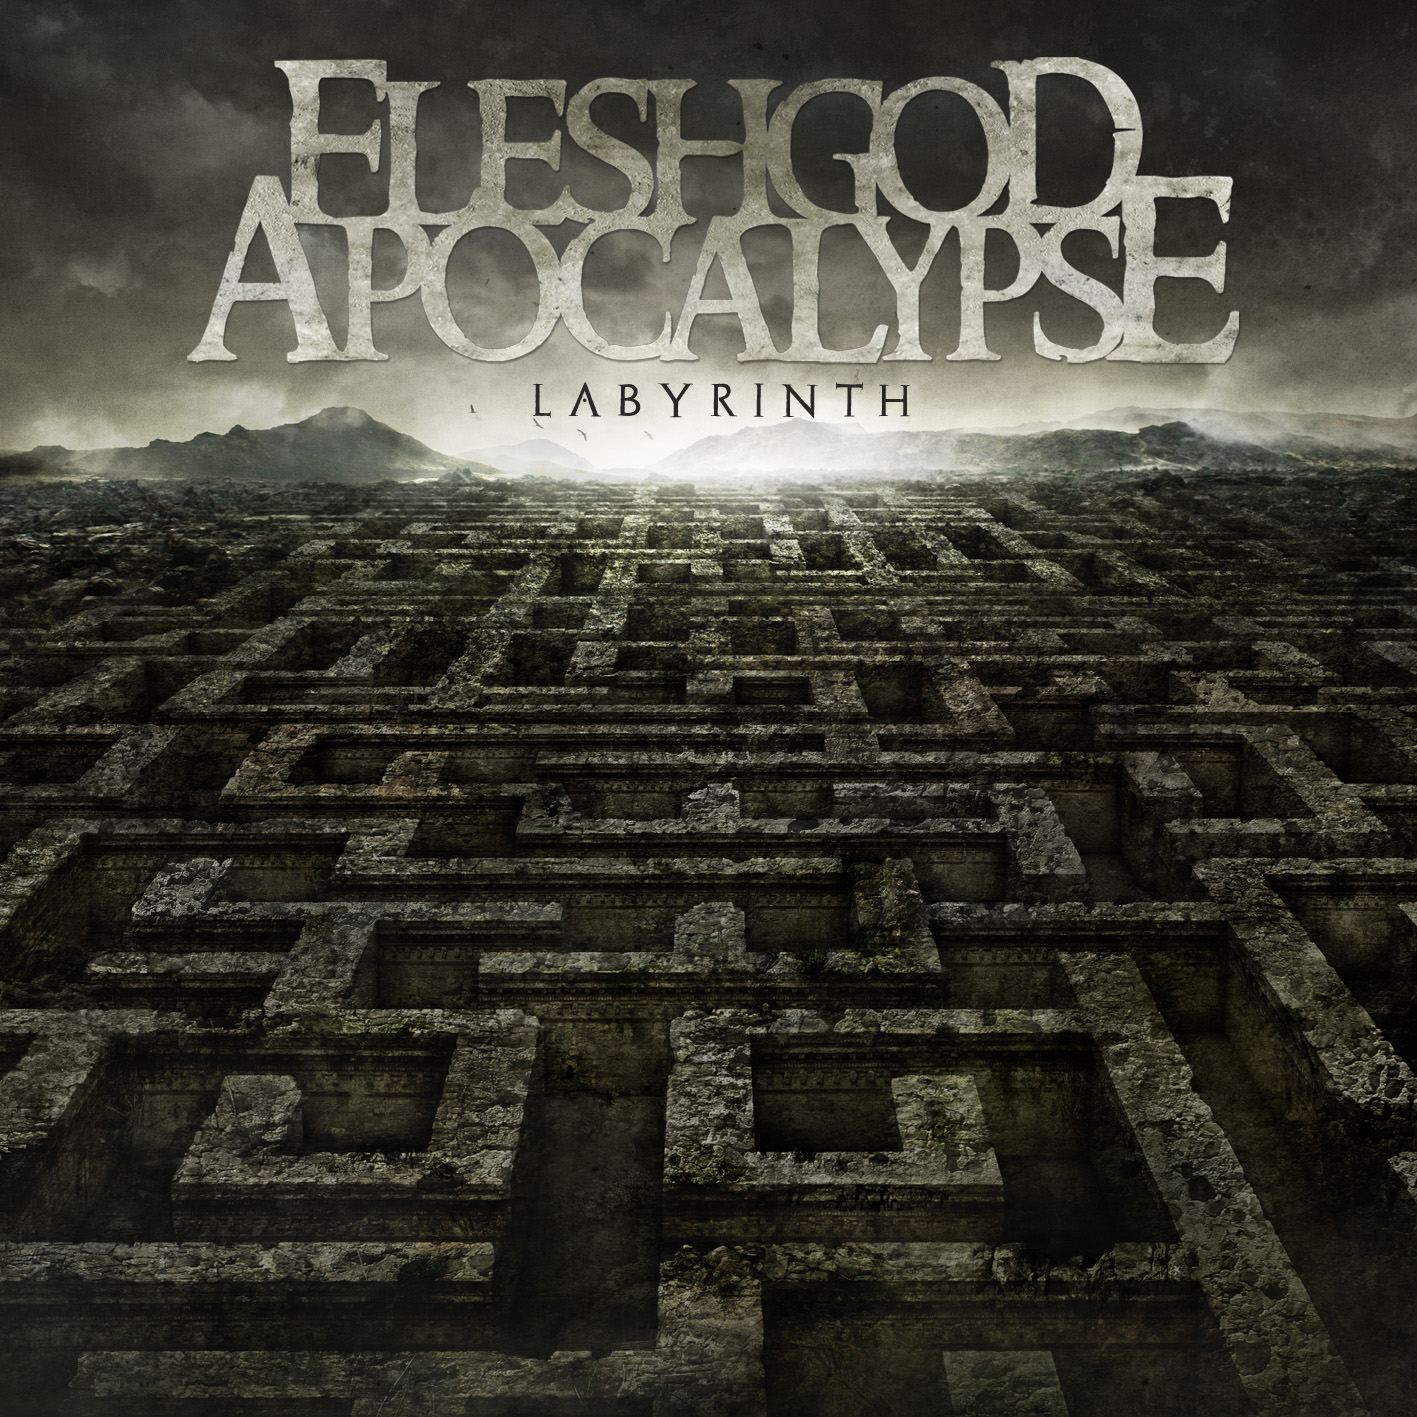 Apocalypse Wallpaper Hd Fleshgod Apocalypse Labyrinth Review Angry Metal Guy